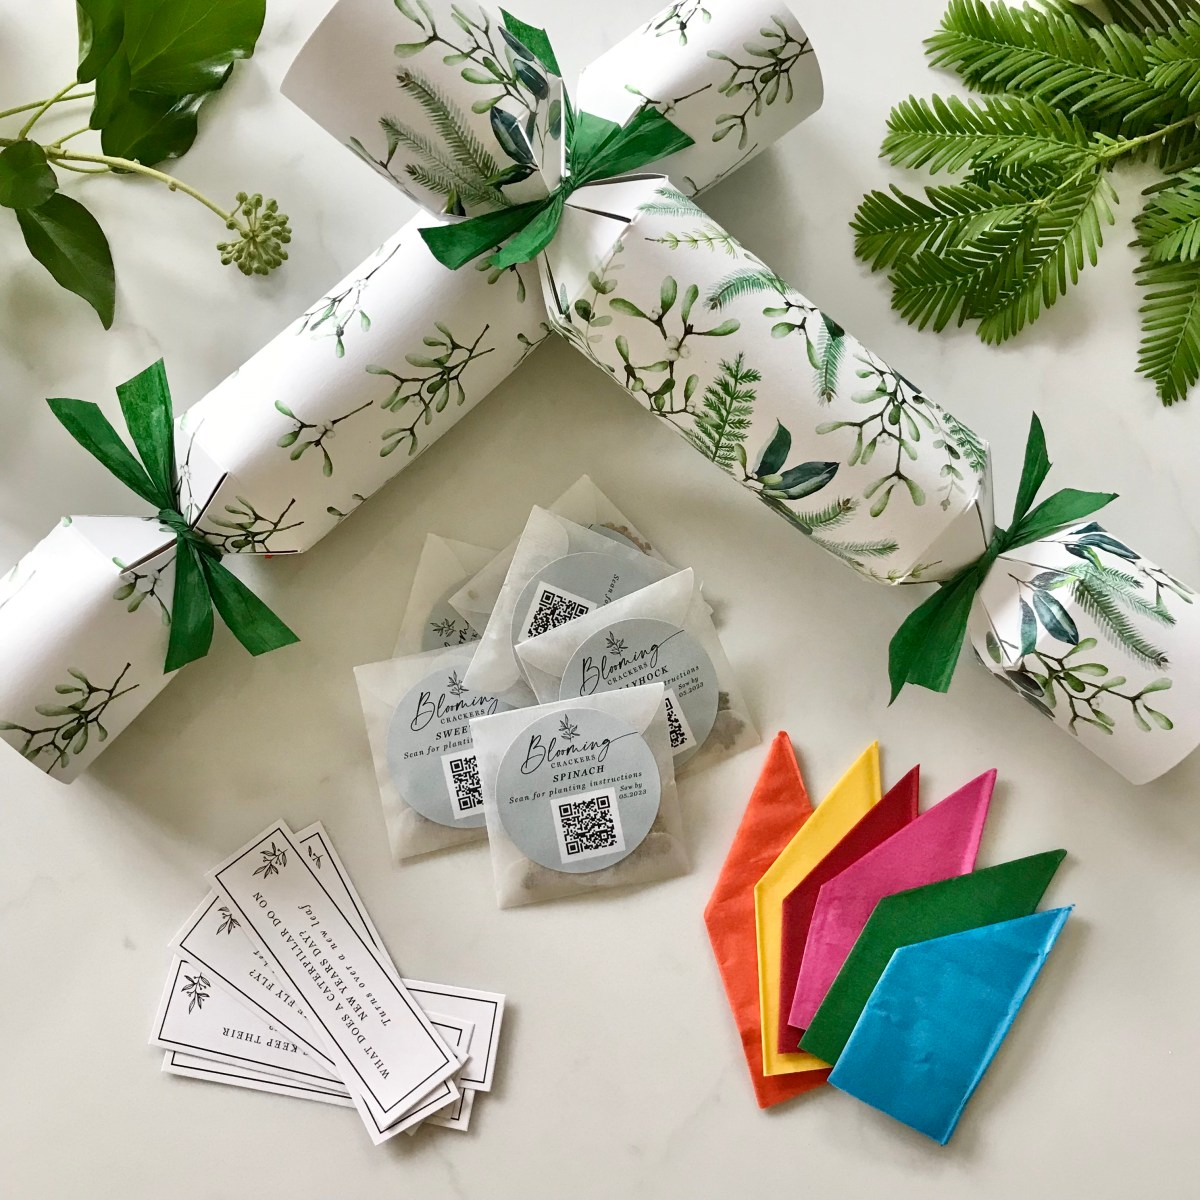 best crackers, best Christmas crackers, sustainable, 2021, eco, environmentally, friendly, green, plastic free, zero waste, recycled, recyclable, christmas, crackers, bon bons, Christmas crackers with seeds inside, crackers with seeds inside, Christmas crackers with seeds, beautiful Christmas crackers, beautiful crackers